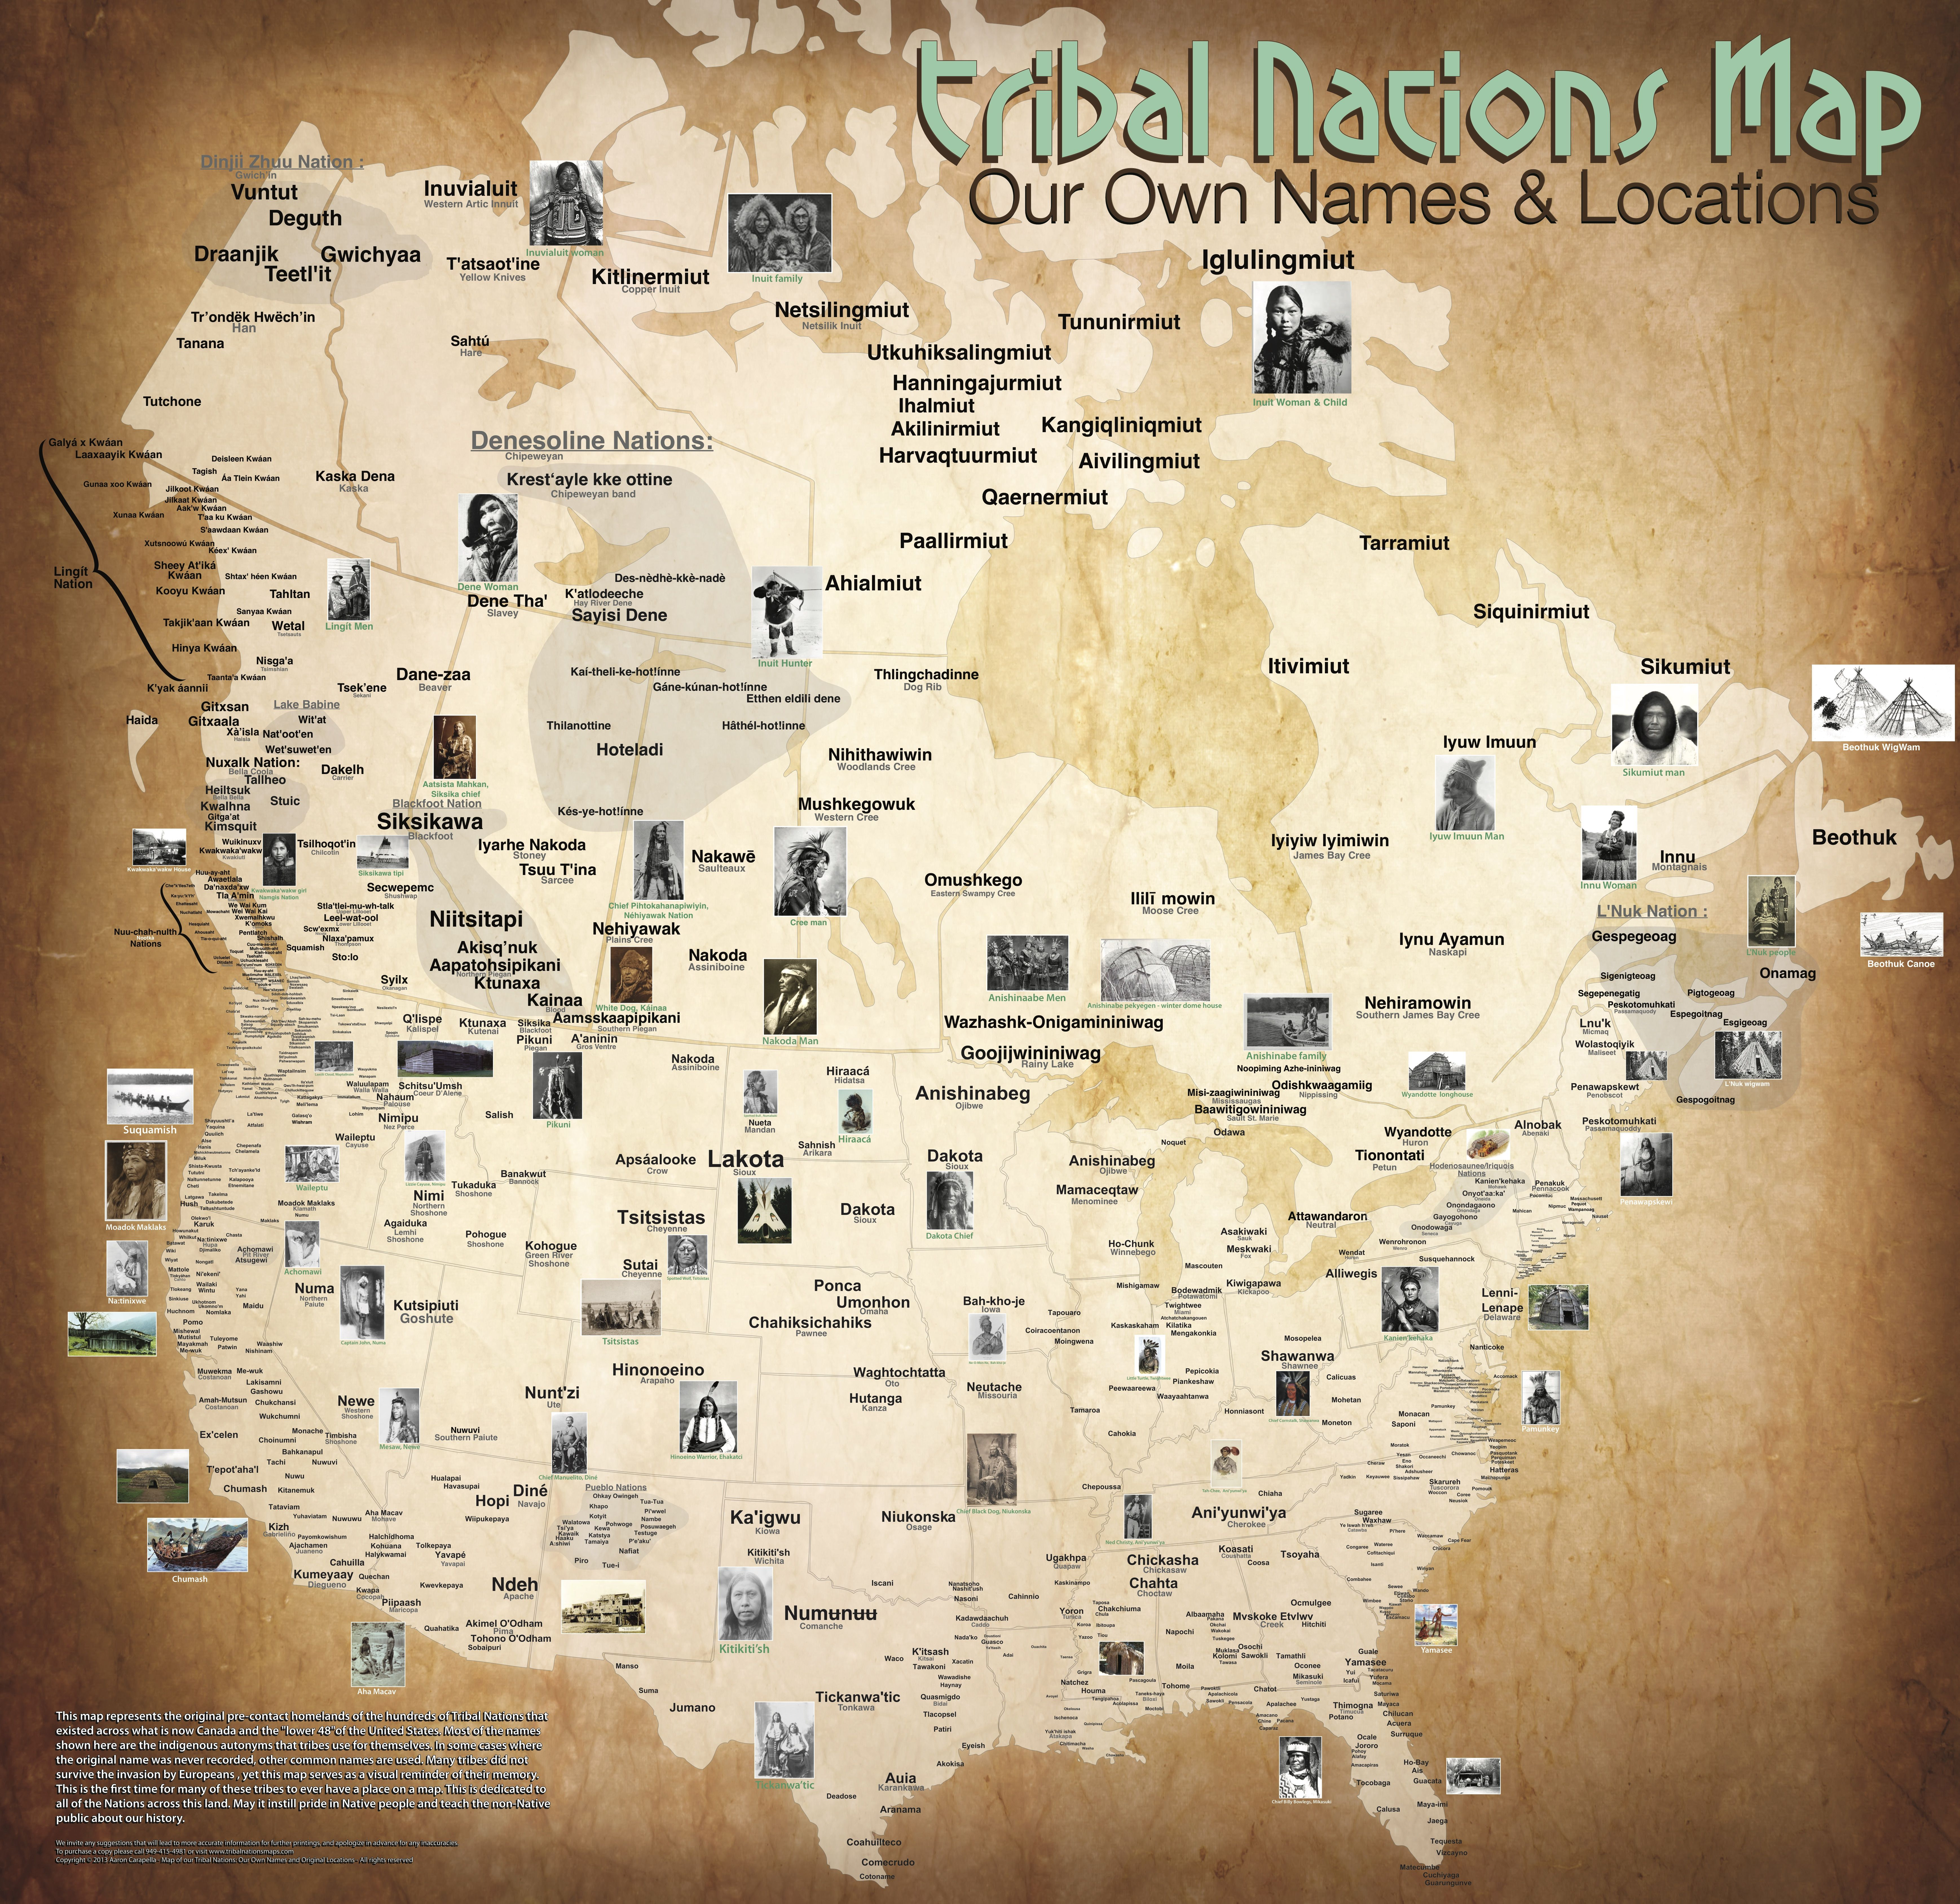 Tribal Nations Map Our own names & Locations Native